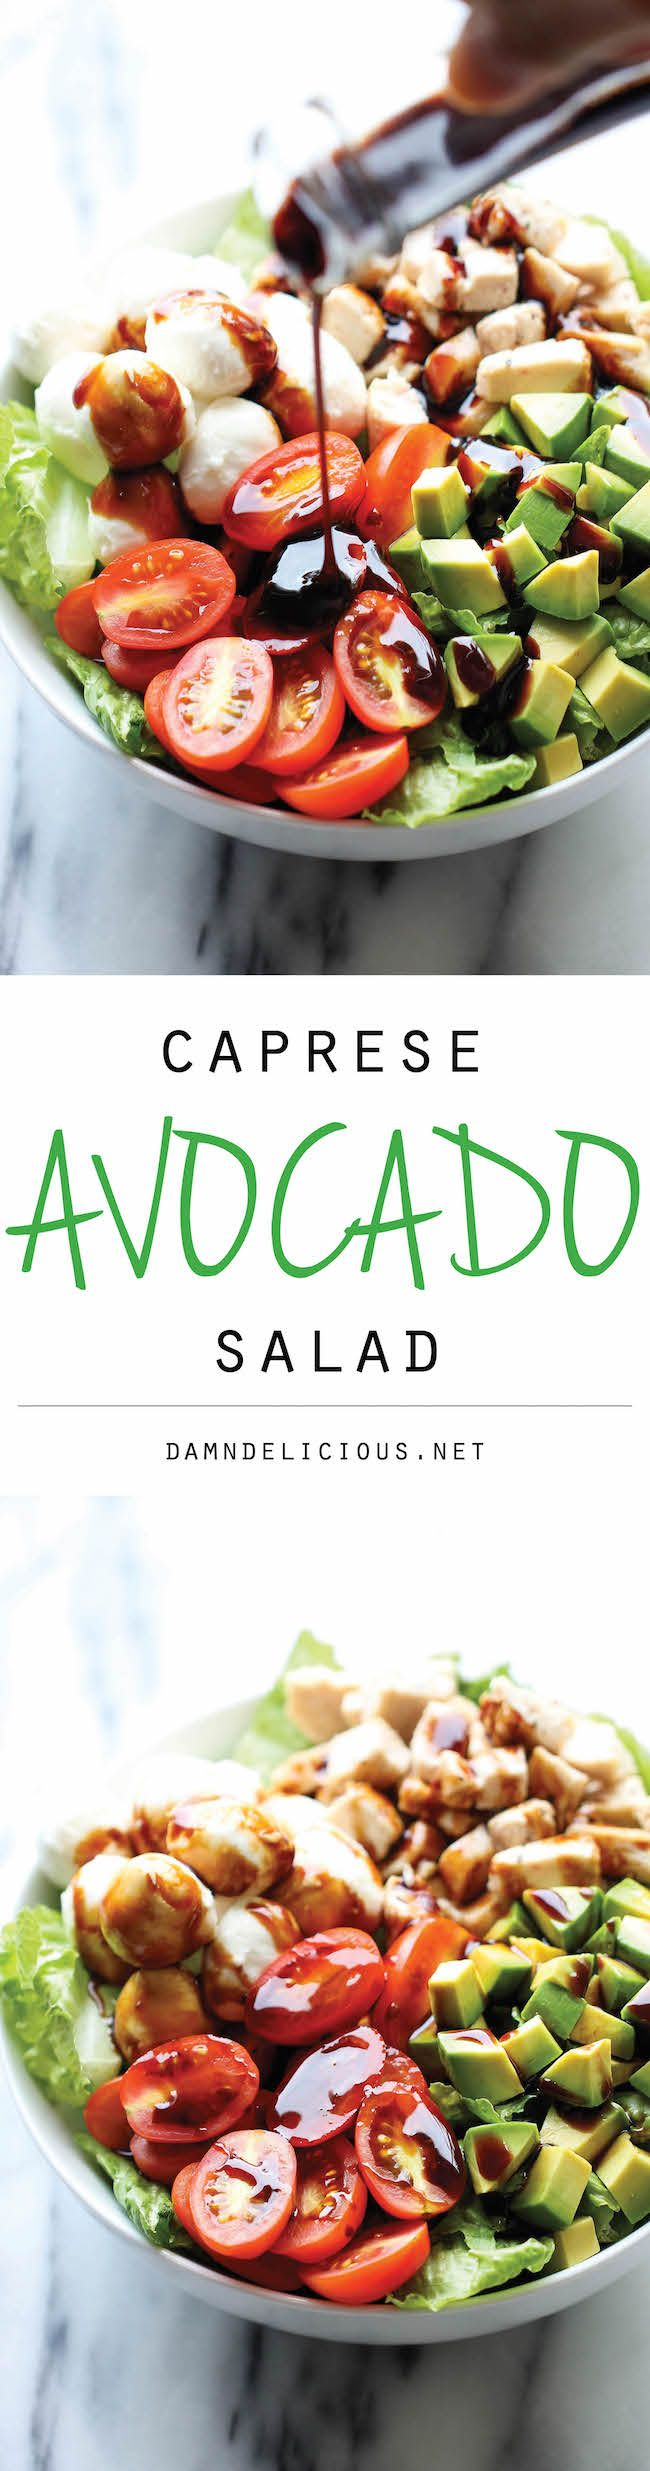 Avocado Balsamic Salad Avocado store Avocado    ecco nyc shoes Recipe   Reduction Caprese Salads  and